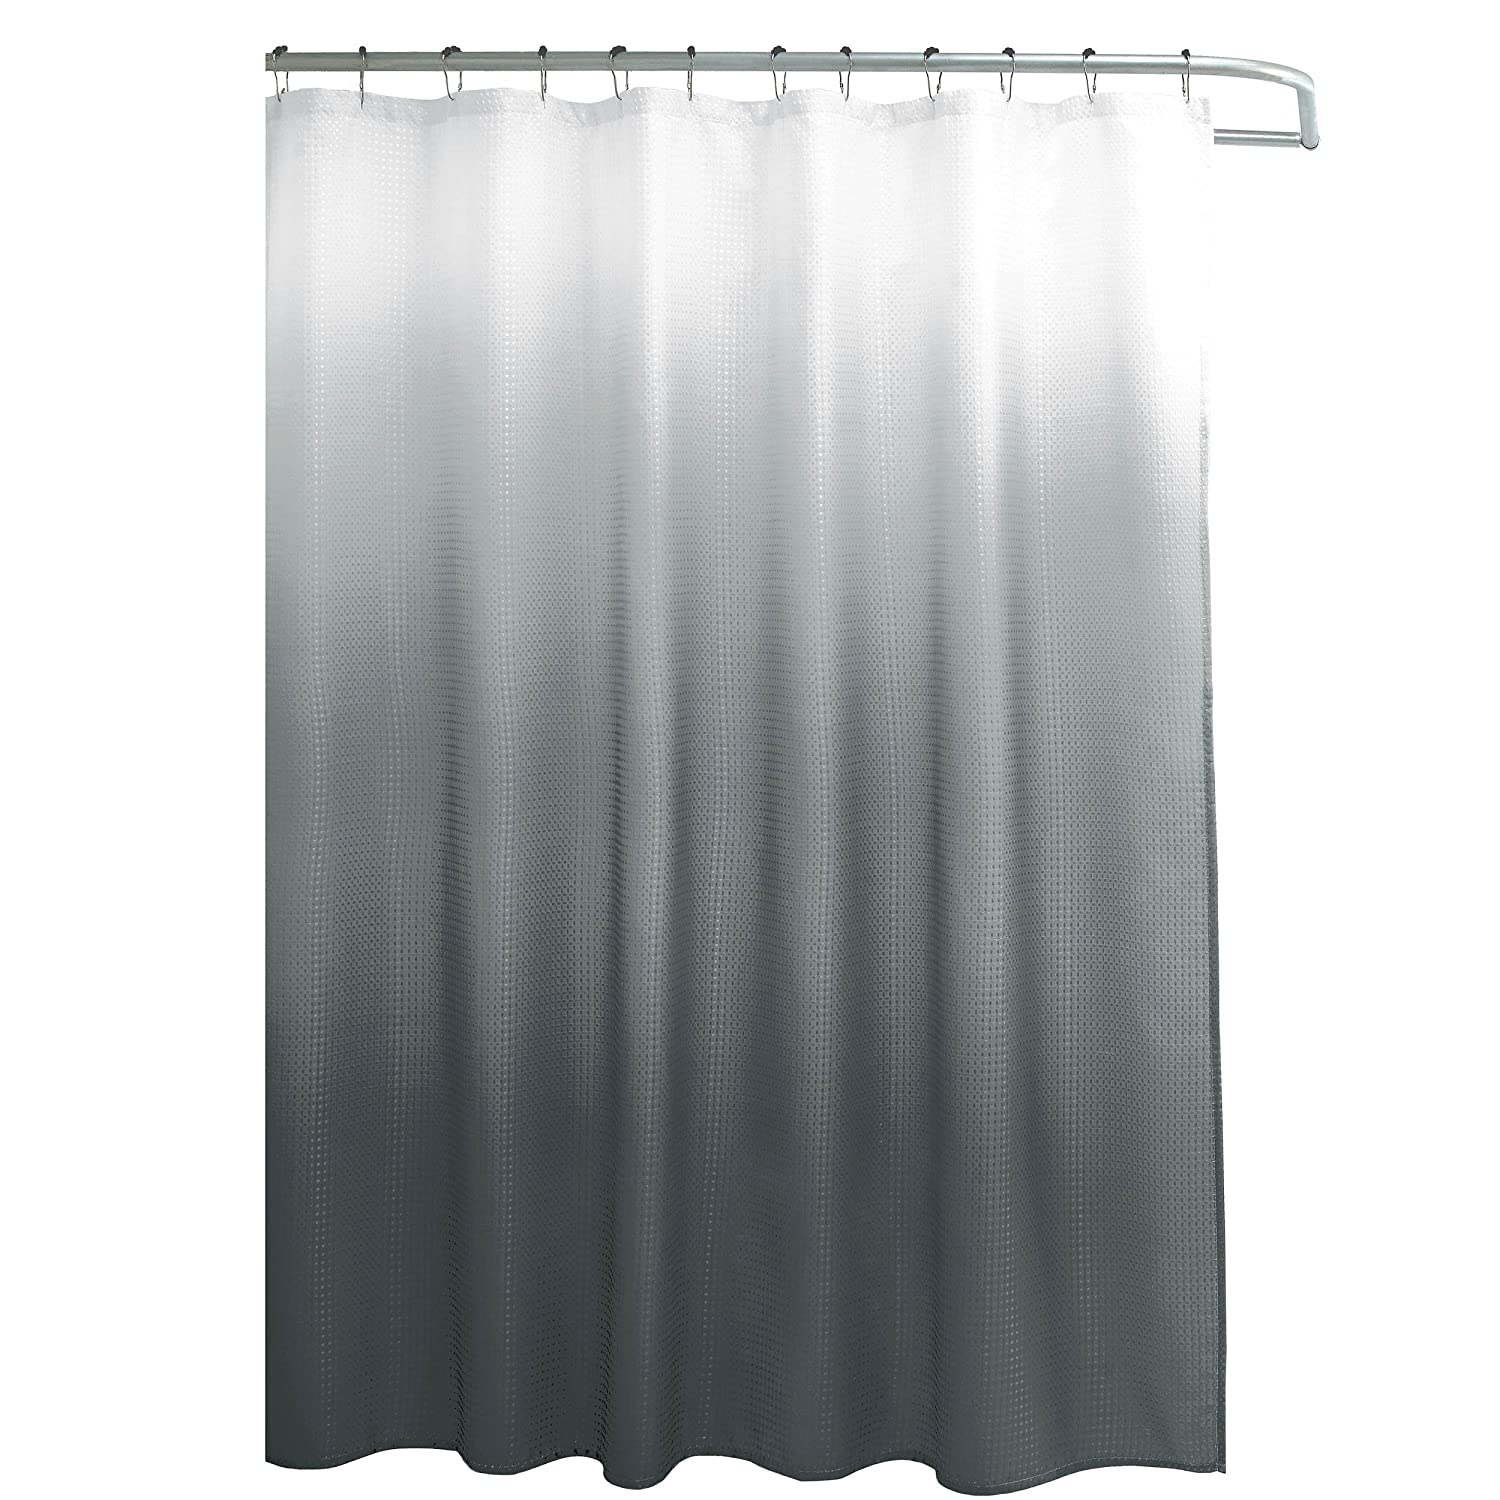 Beaded door curtains for kids - Amazon Com Creative Home Ideas Ombre Textured Shower Curtain With Beaded Rings Dark Grey Home Kitchen